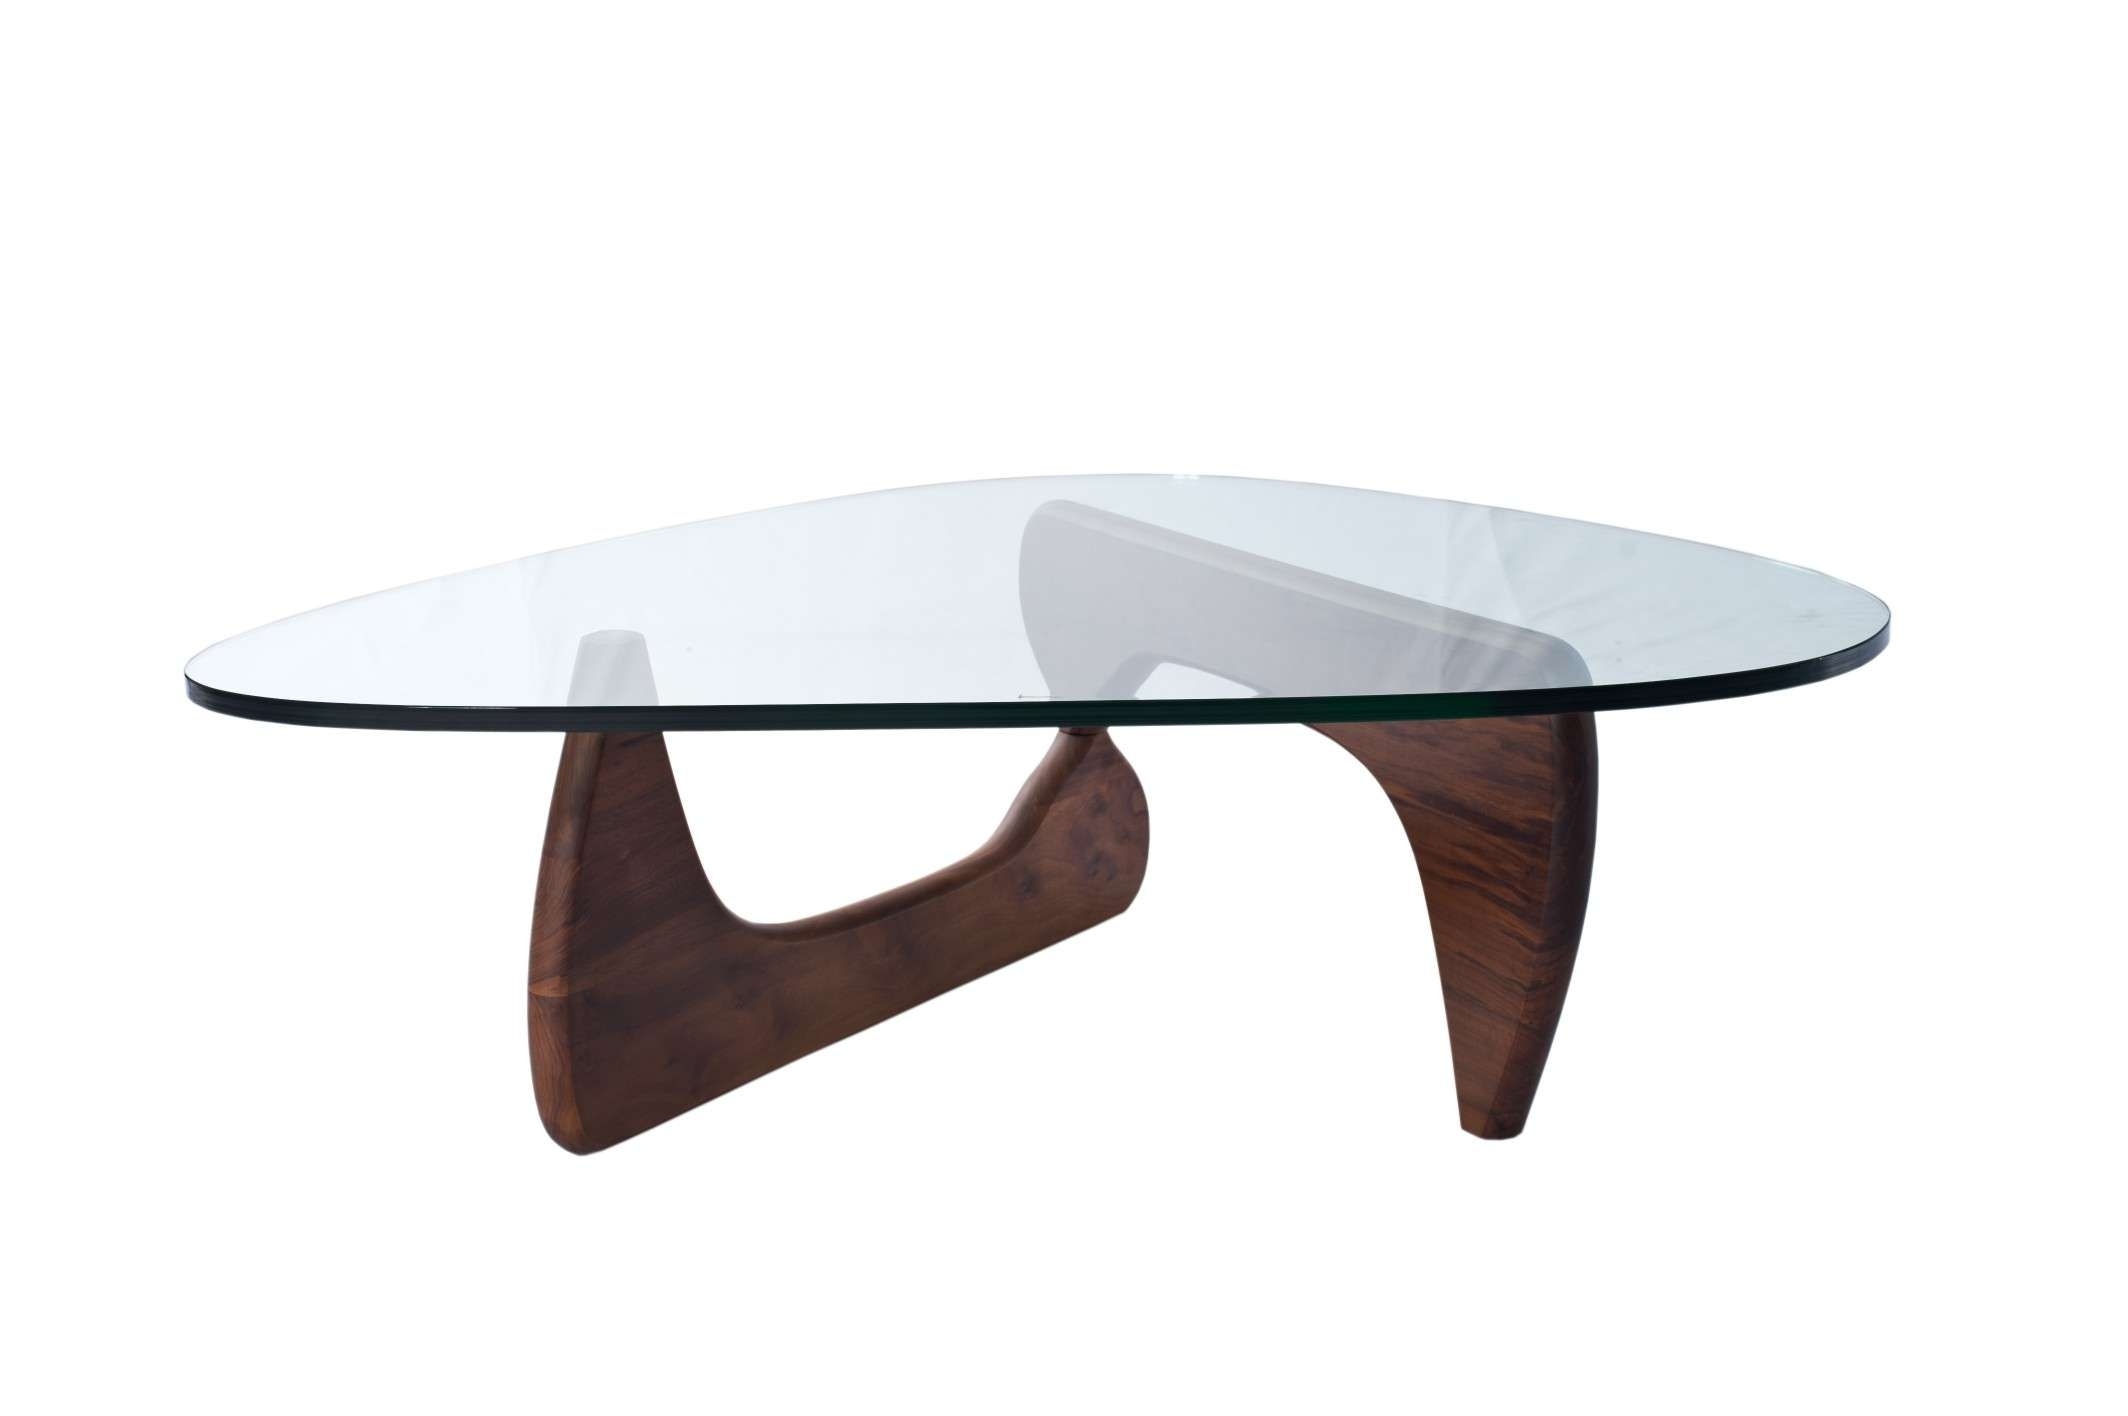 Popular Noguchi Coffee Tables Regarding Coffee Tables : Isamu Noguchi Coffee Table Rudder Dining Model In (View 12 of 20)